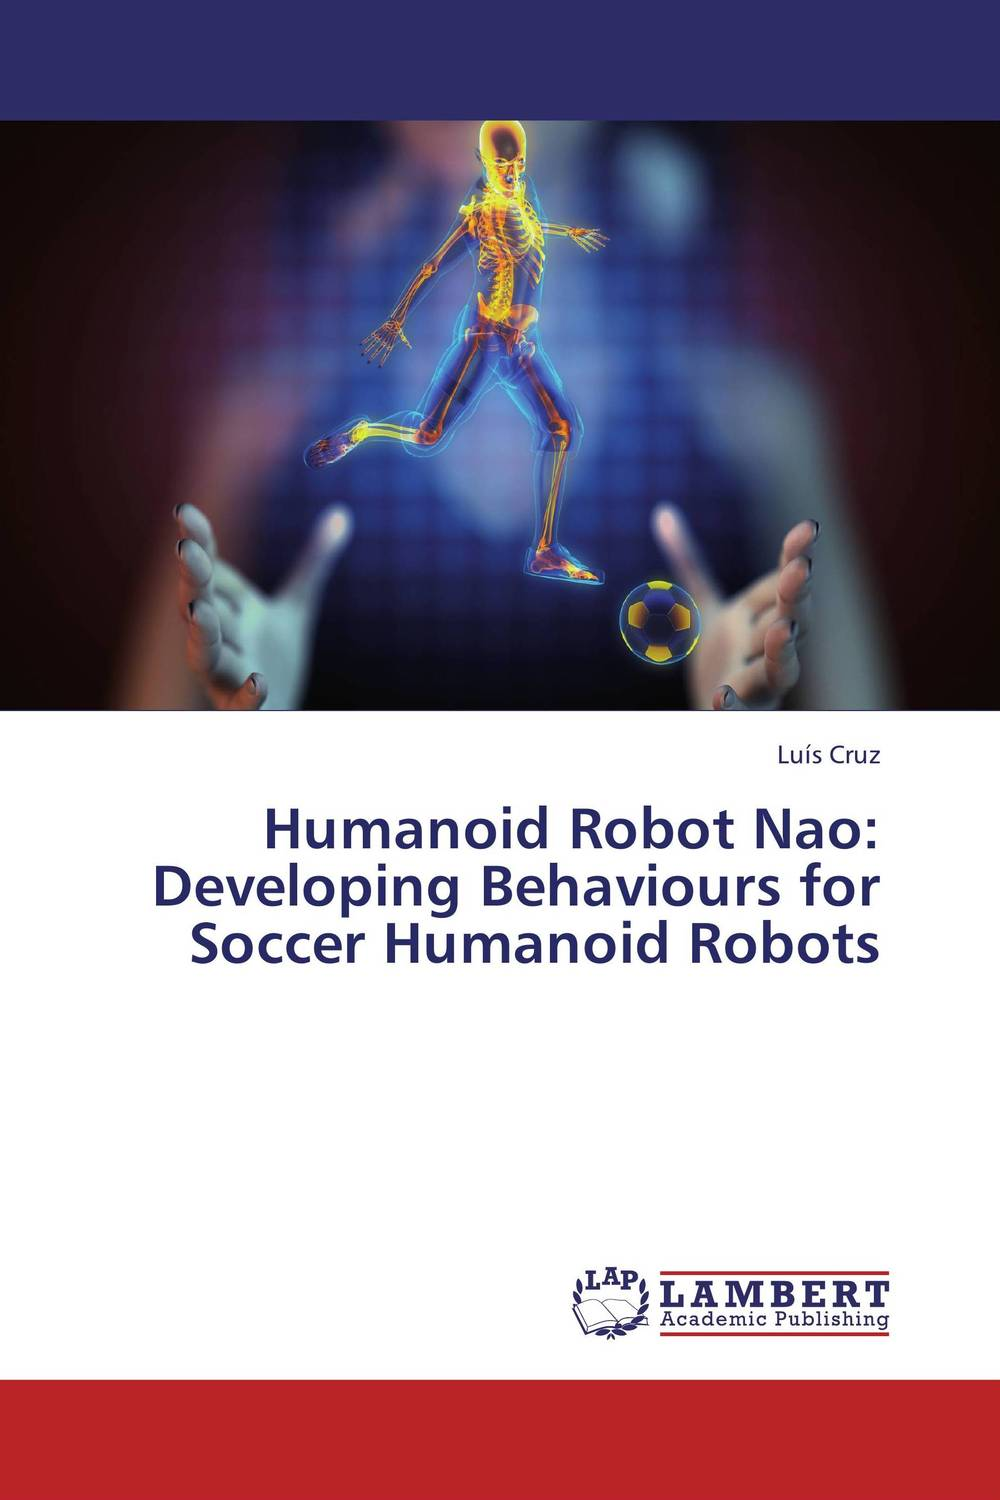 Humanoid Robot Nao: Developing Behaviours for Soccer Humanoid Robots peter stone layered learning in multiagent systems – a winning approach to robotic soccer